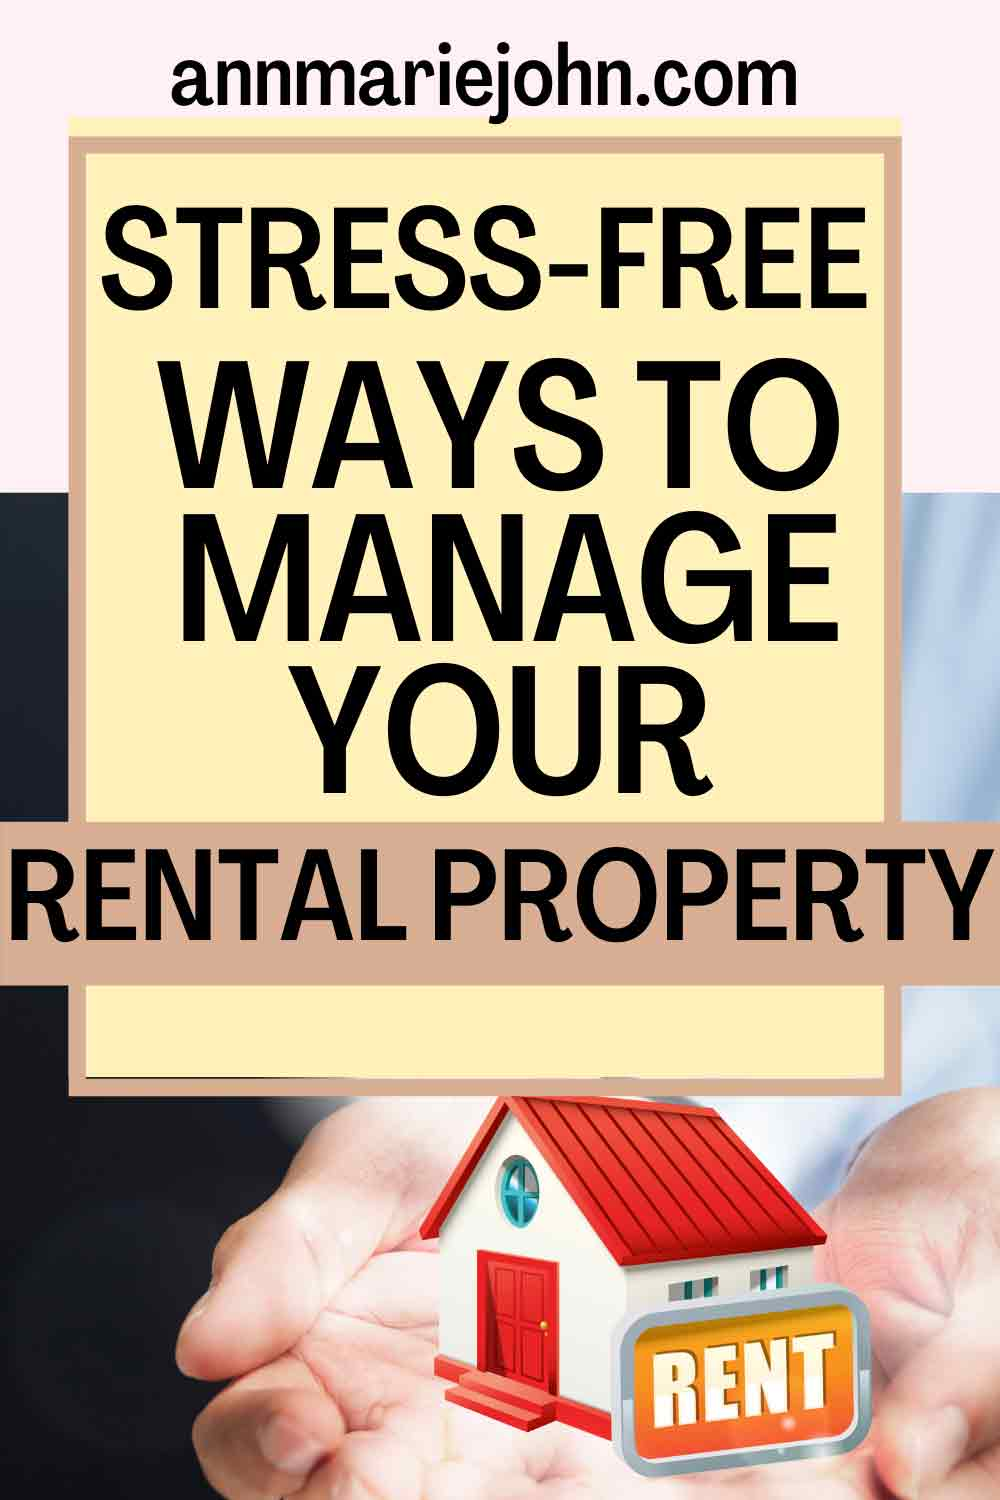 Stress-Free Ways To Manage Your Rental Property